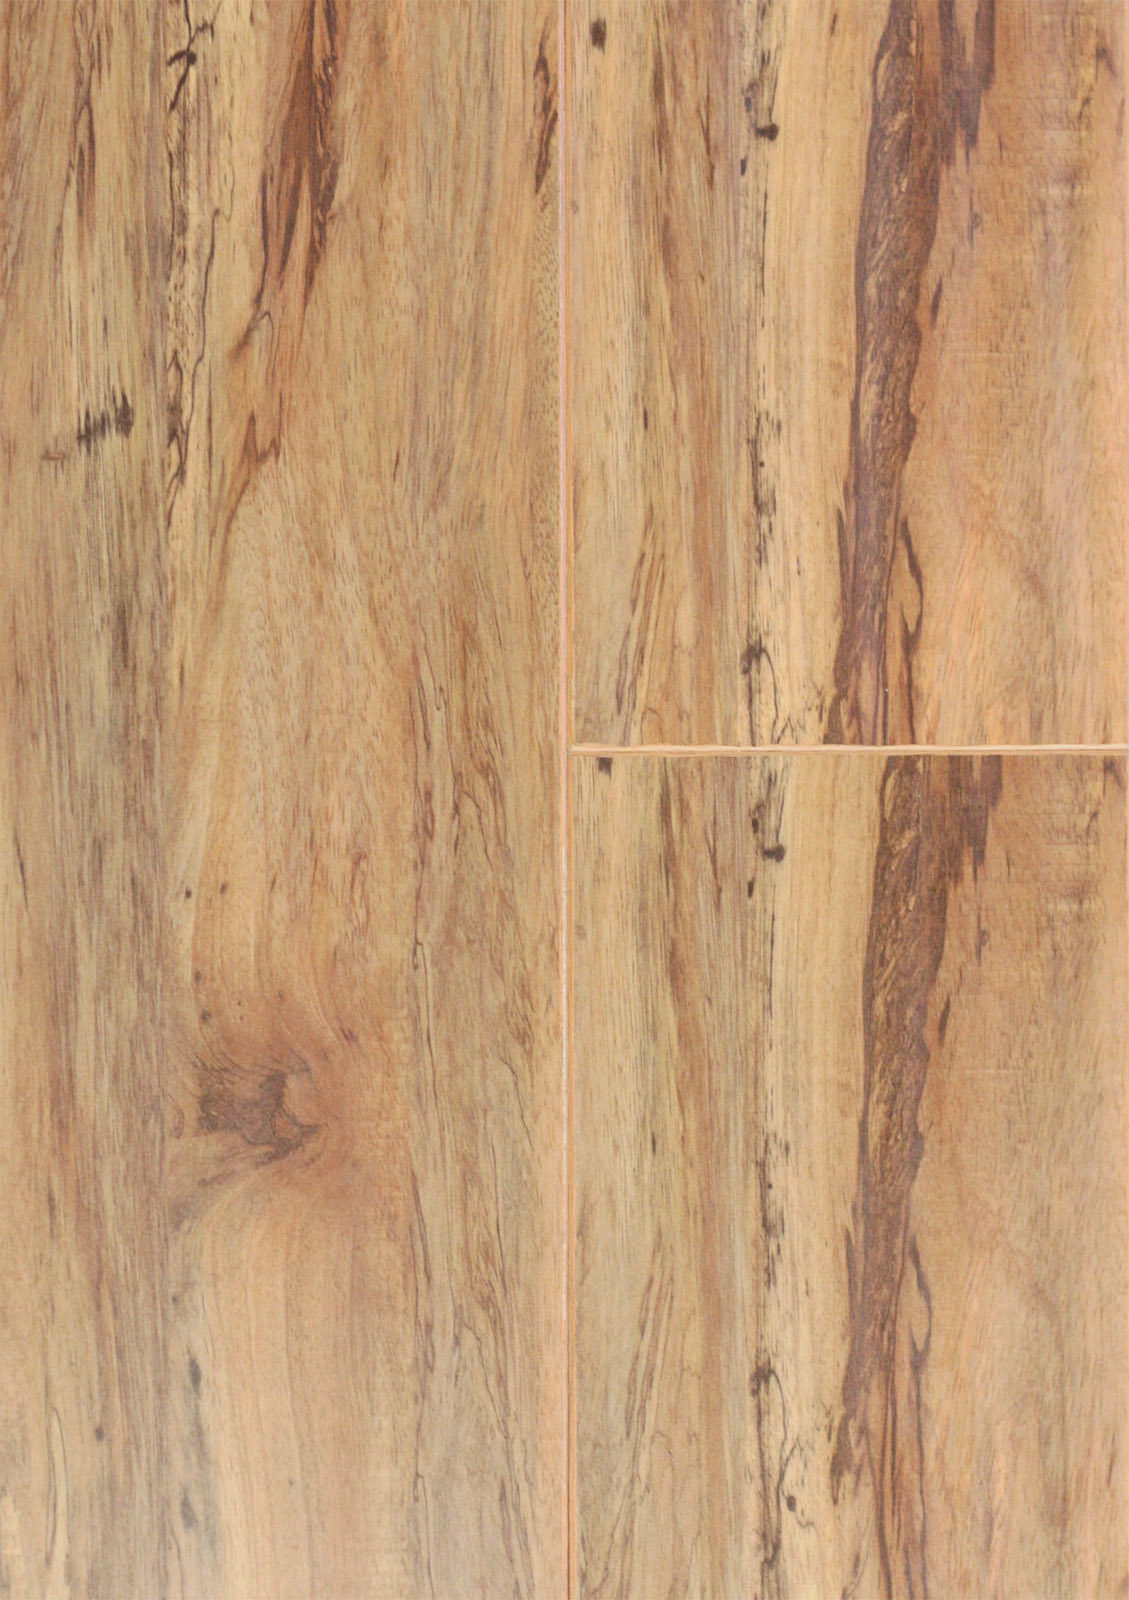 Distressed flooring laminate wood floors for Distressed wood flooring